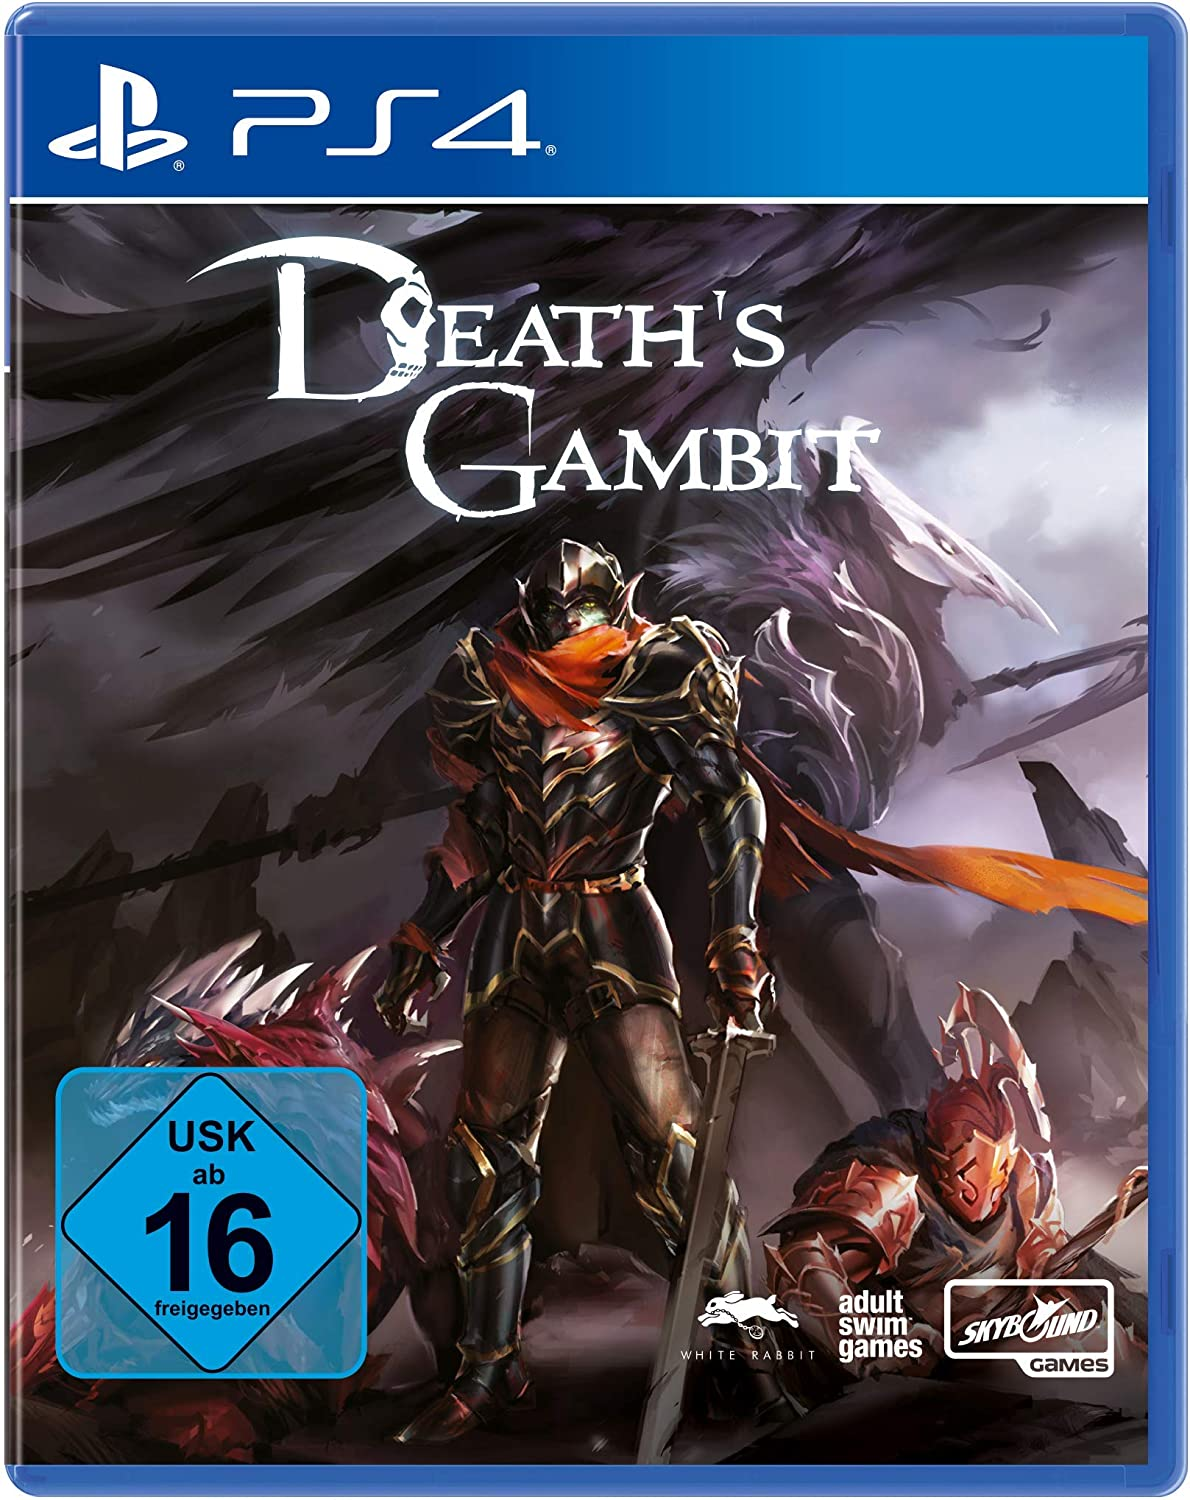 Deaths Gambit - PlayStation 4 [Importación alemana]: Amazon.es: Videojuegos